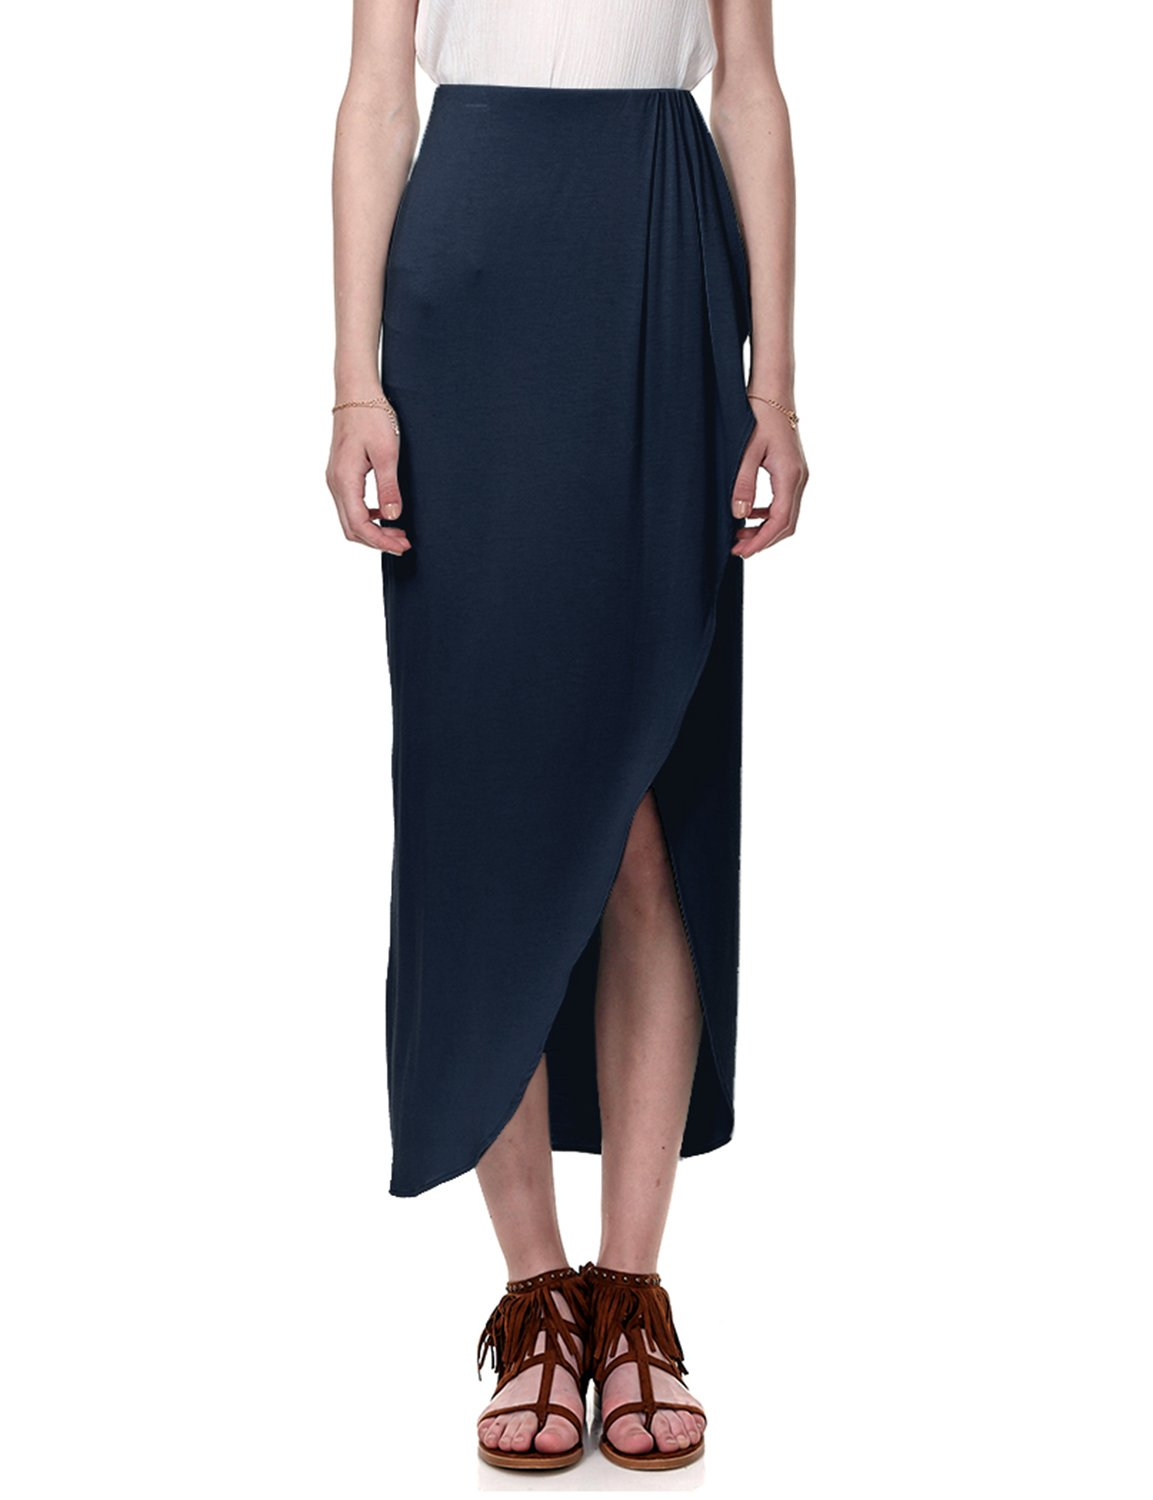 Regna X BOHO for womans stretch high banding blouses big maxi long floor length skirts, XX-Large Plus, Navy